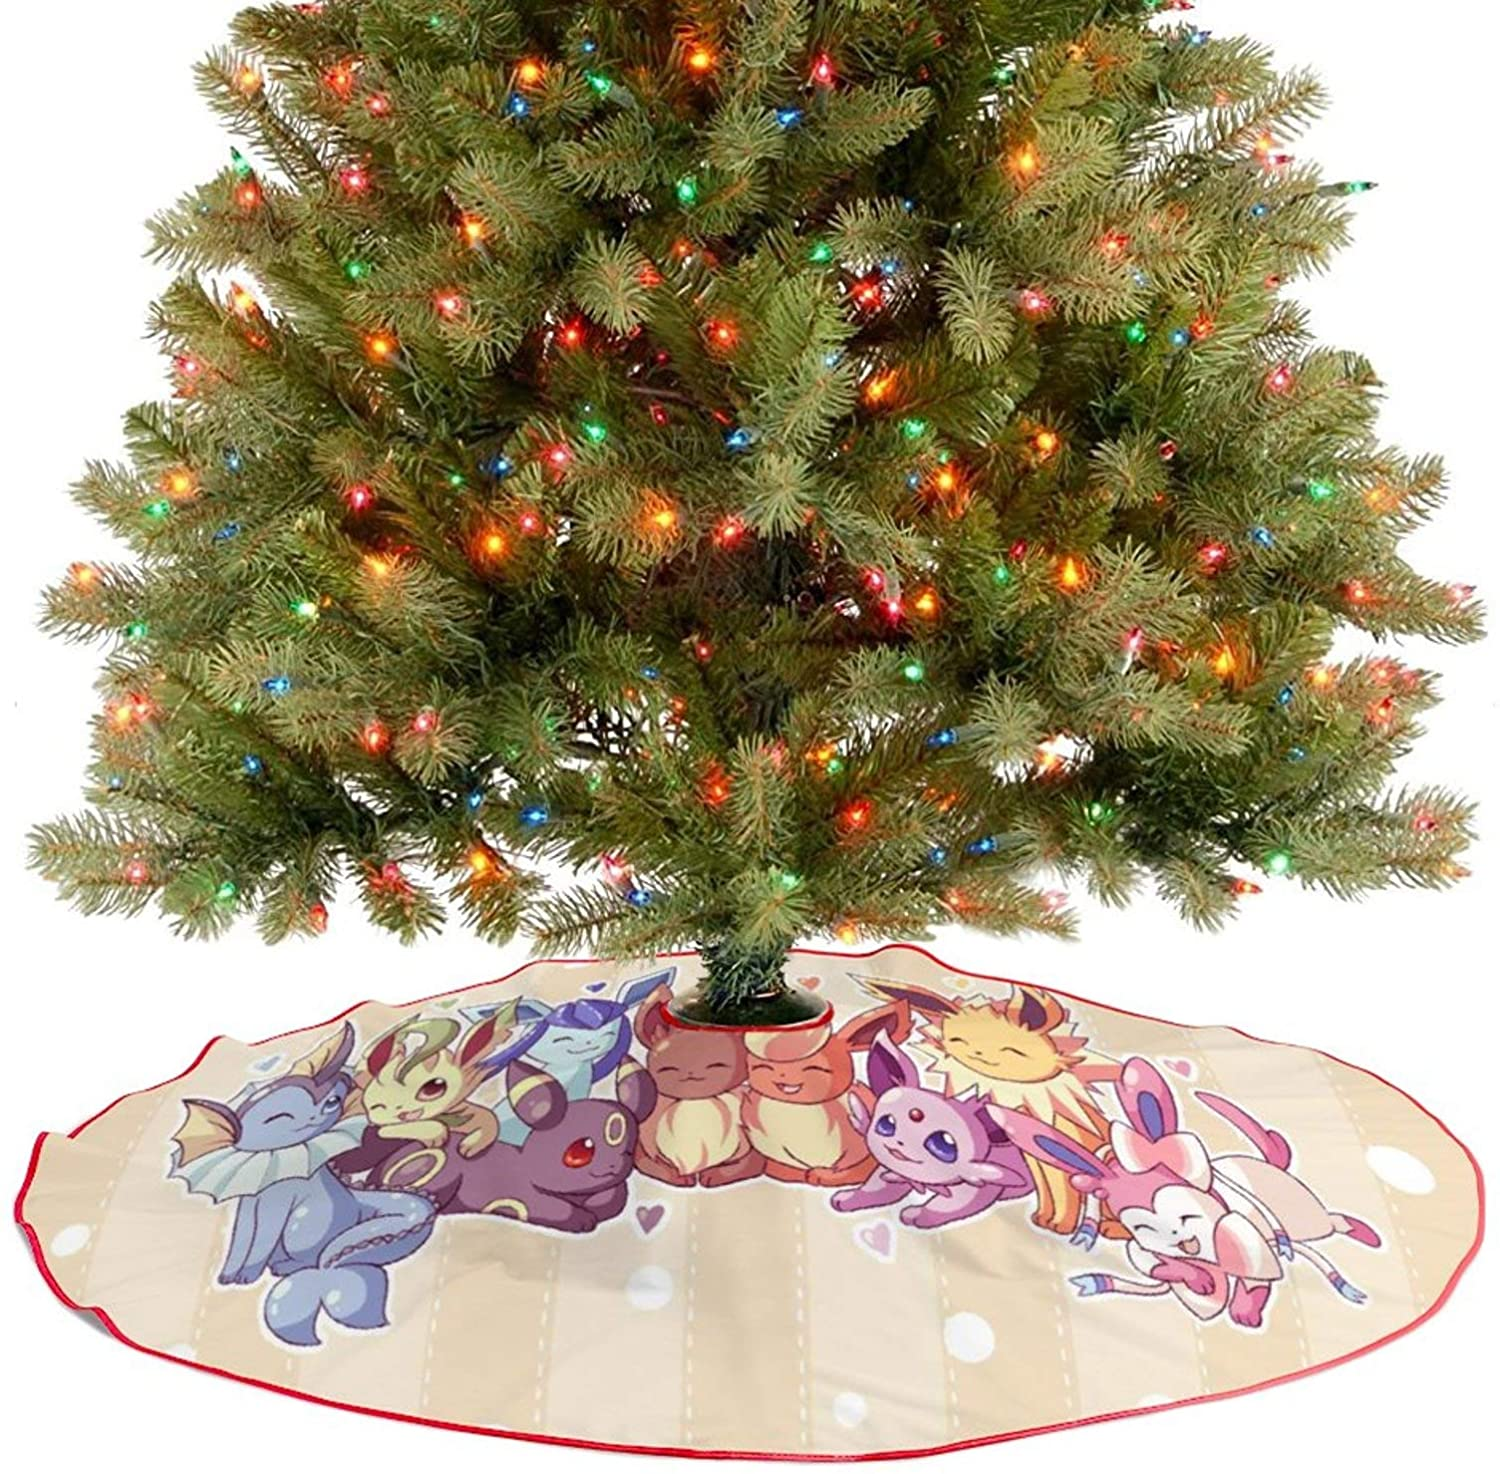 oobon Christmas Tree Skirt for Anime Fans,Eevee Evolutions (6), Xmas Holiday Party Ornament Supplies Large Santa Tree Mat Decor for Gift and Decoration, 30 inches